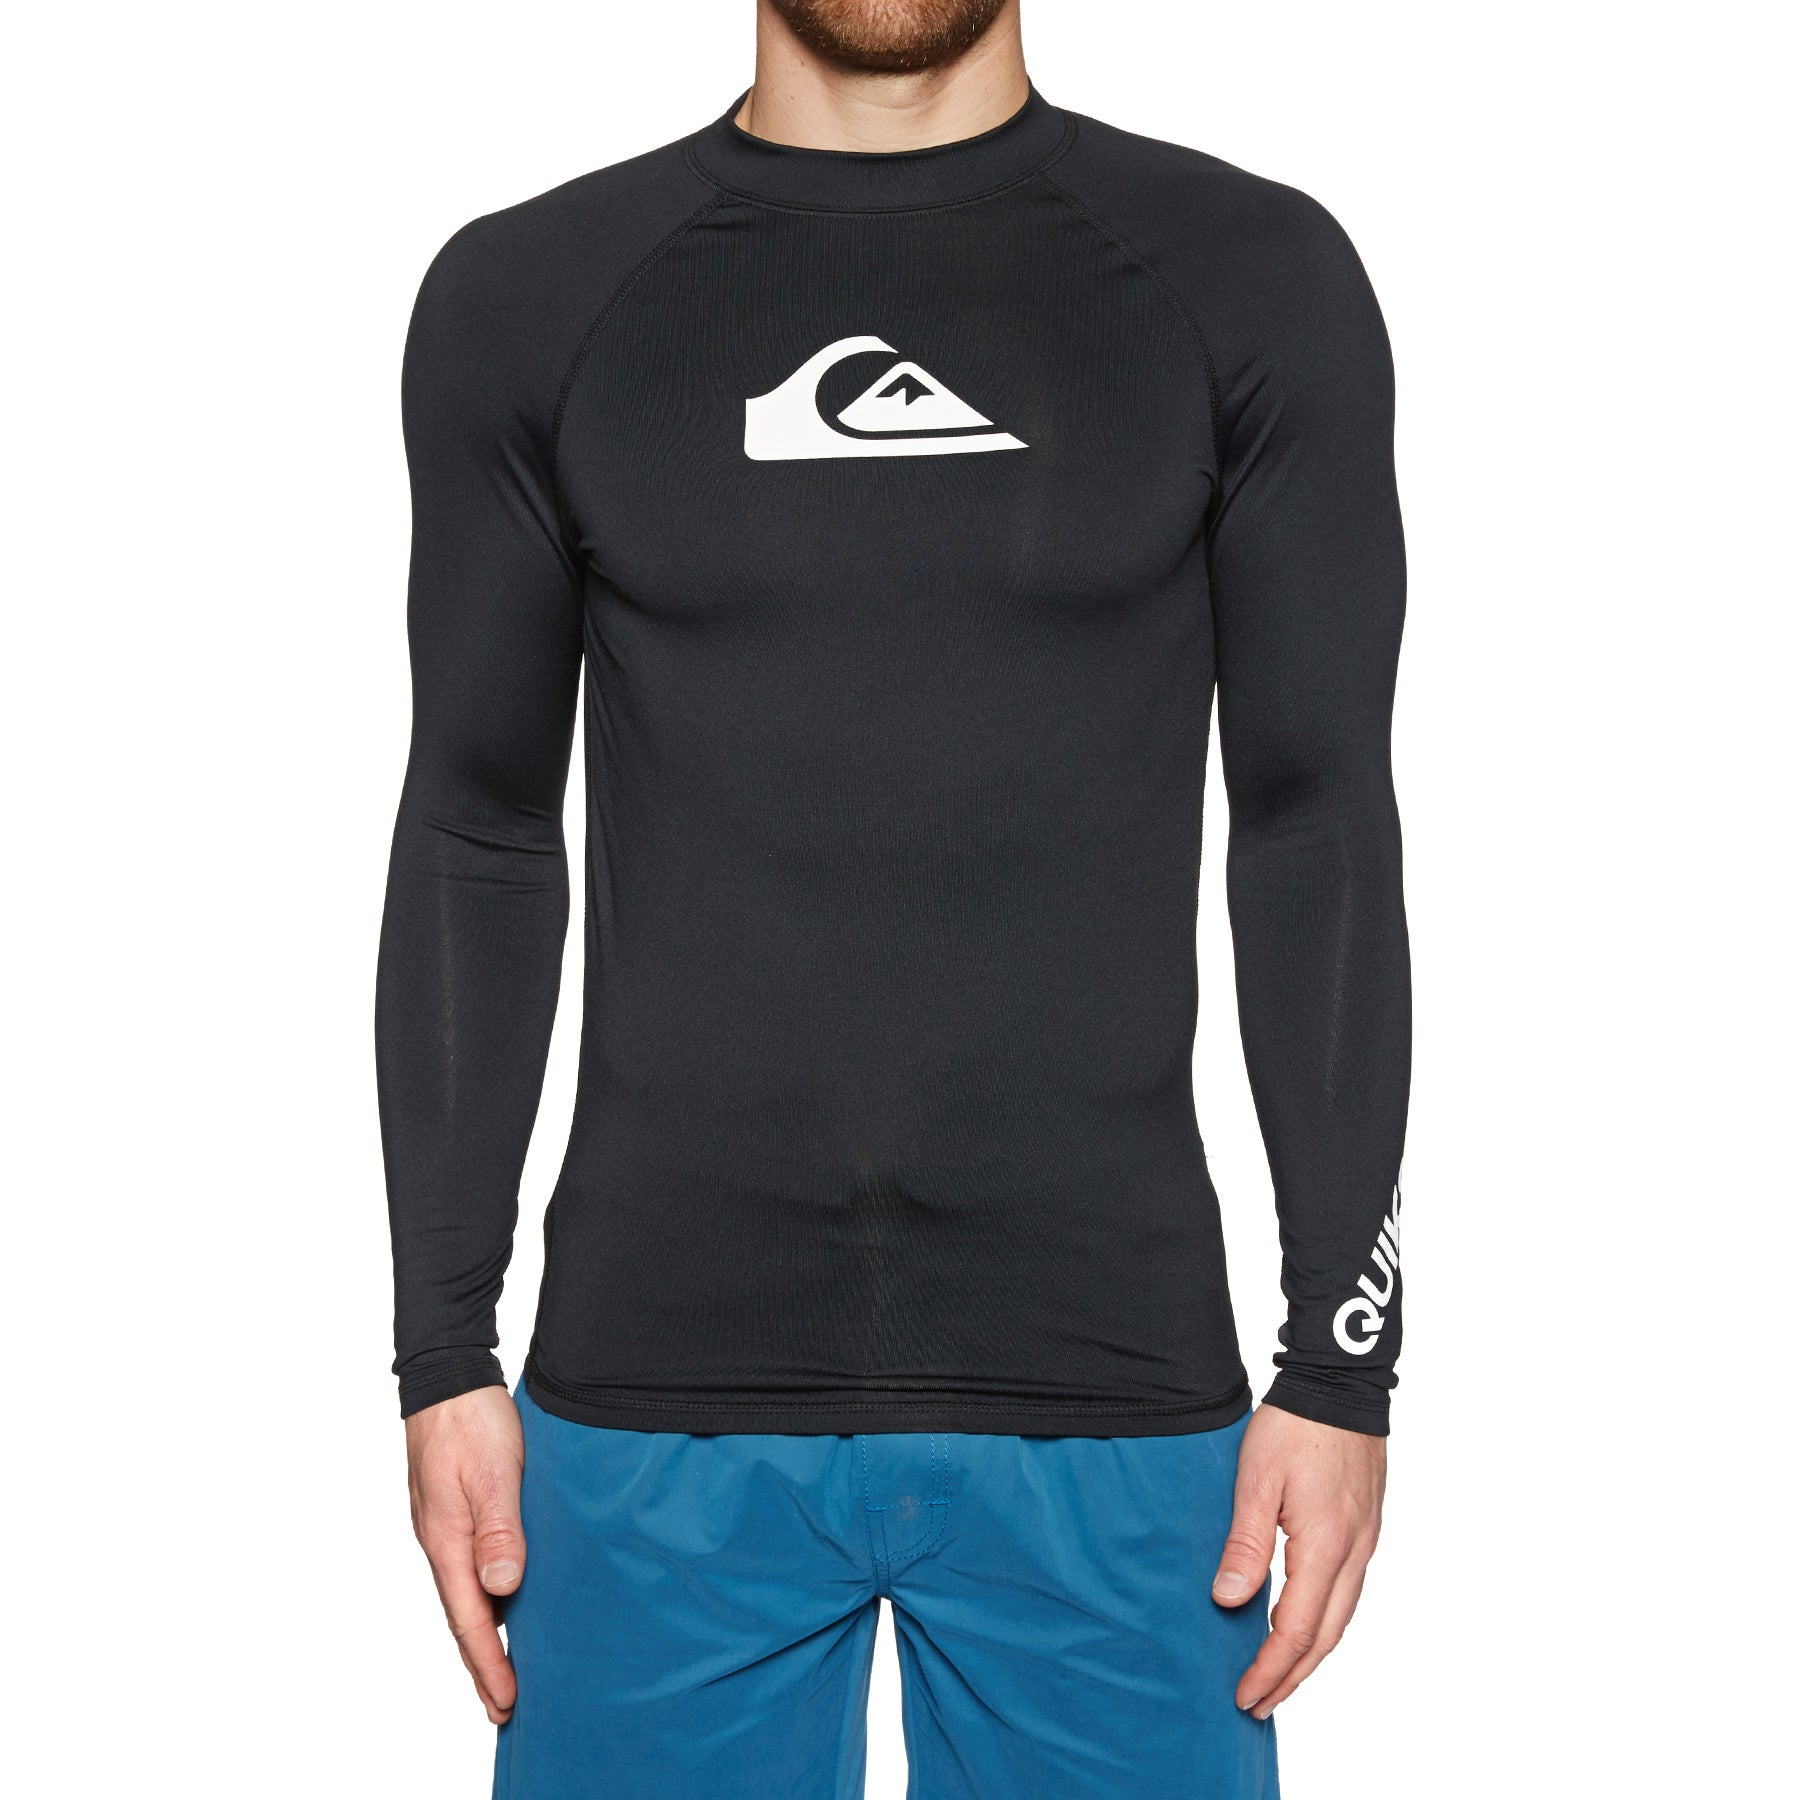 Quiksilver All Time Long Sleeve UPF 50 Rash Vest - Black